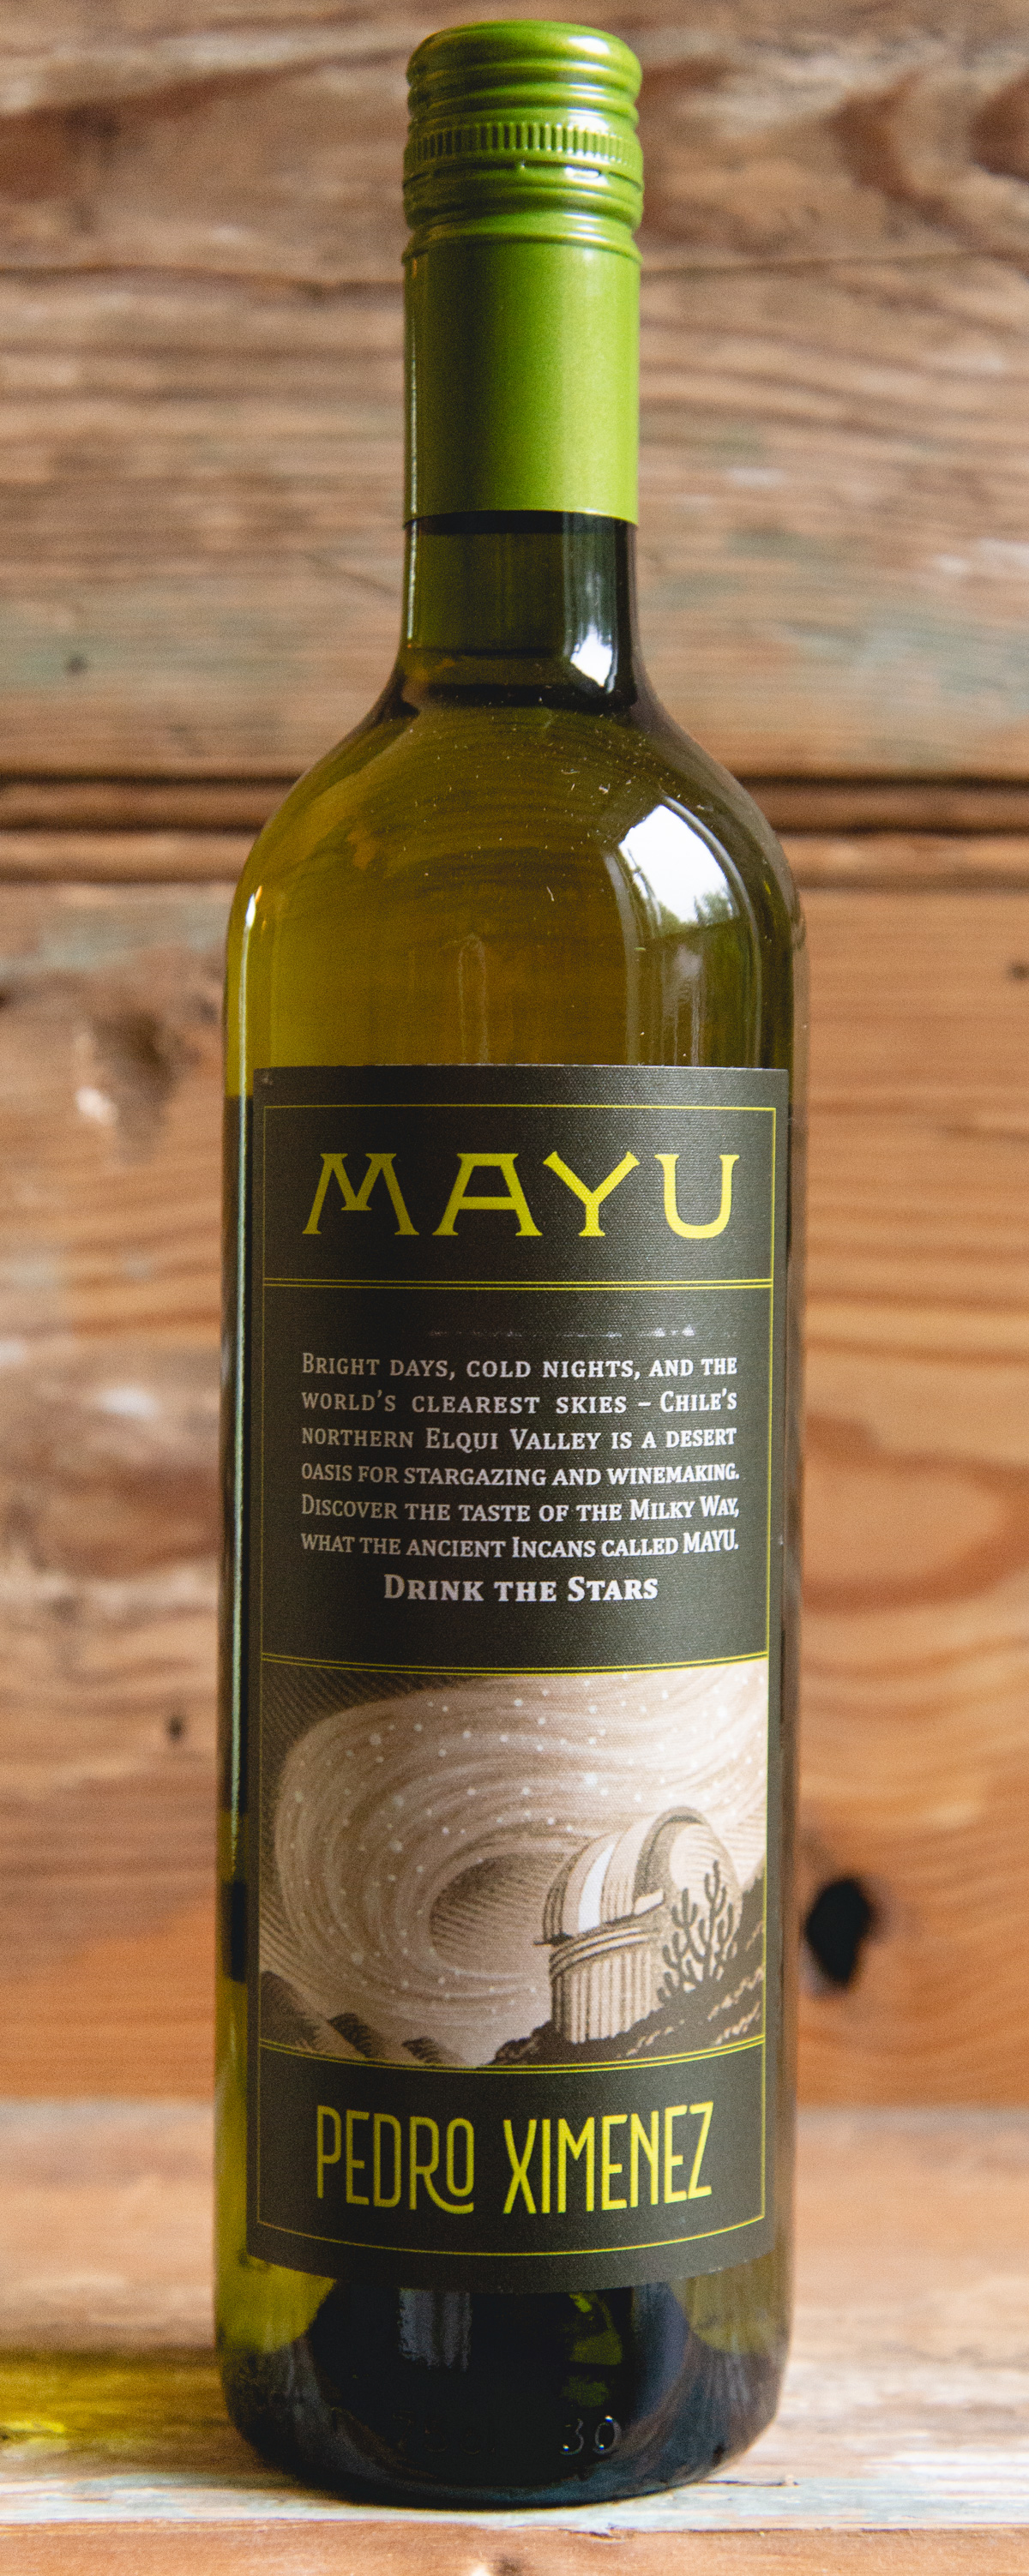 Mayu Pedro Ximénez 2017 - Origin: ChileRetail: $16.95   Sale: $15.25The Olivier family started Viña Mayu in 2005 and were the first to bring winemaking to the Elqui Valley. This desert of Chile is known for some of the best stargazing in the world, as well as a perfect place to grow grapes with its warm days, cool nights and a touch of the salty ocean breeze. This single-vineyard, old vine, dry PX from one of Chile's highest elevation vineyards is a must-have for the summer. It's a stylish white wine that offers appealing floral and fruit aromas, with flavors balanced by fresh acidity, minerality and a long finish. It is best served with a range of foods, especially shellfish and other seafood.Pedro Ximénez